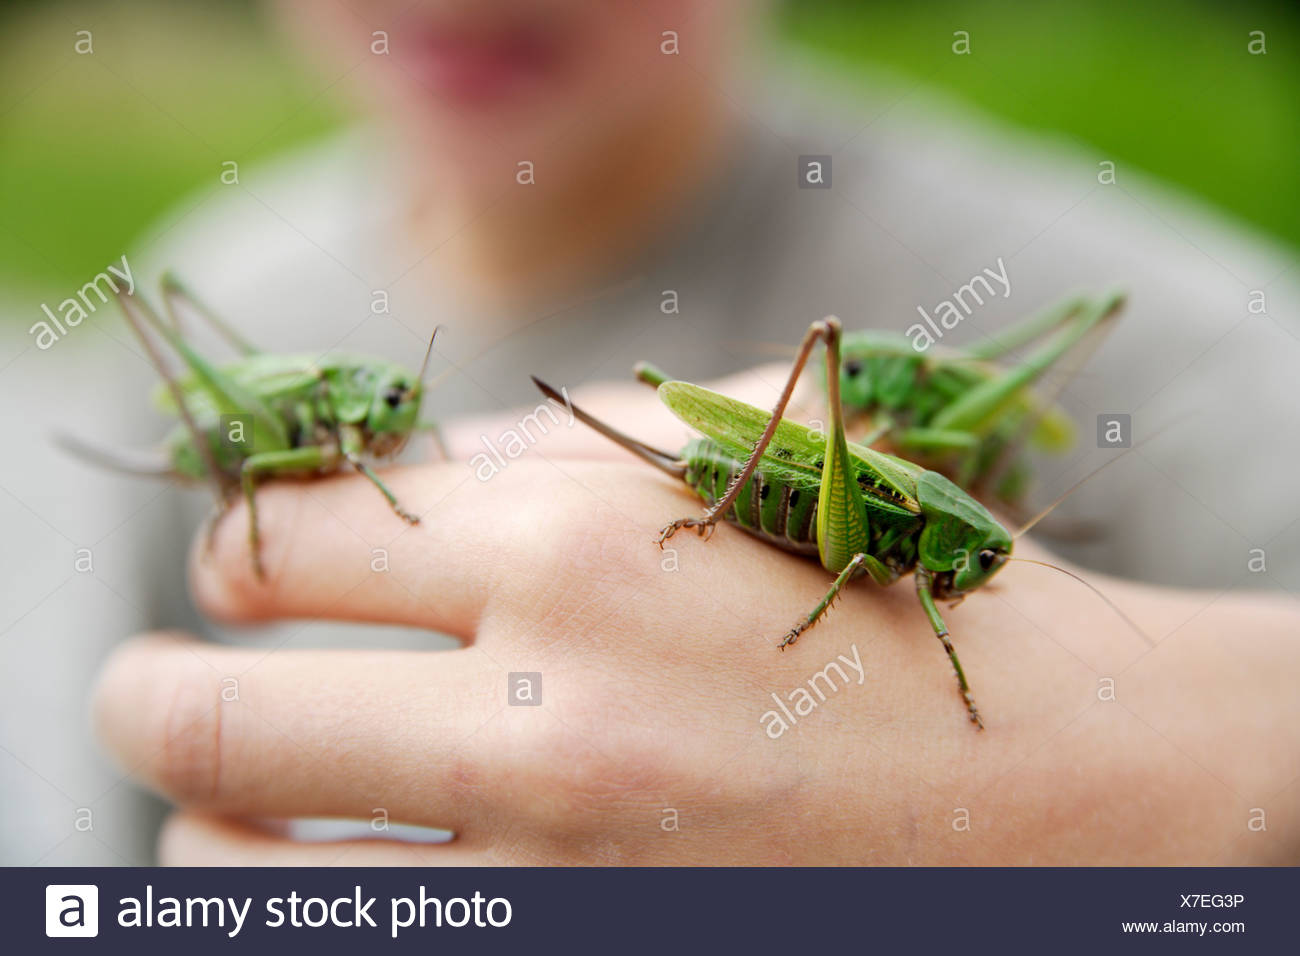 Boy holding long-horned grasshopper, close-up of hand - Stock Image